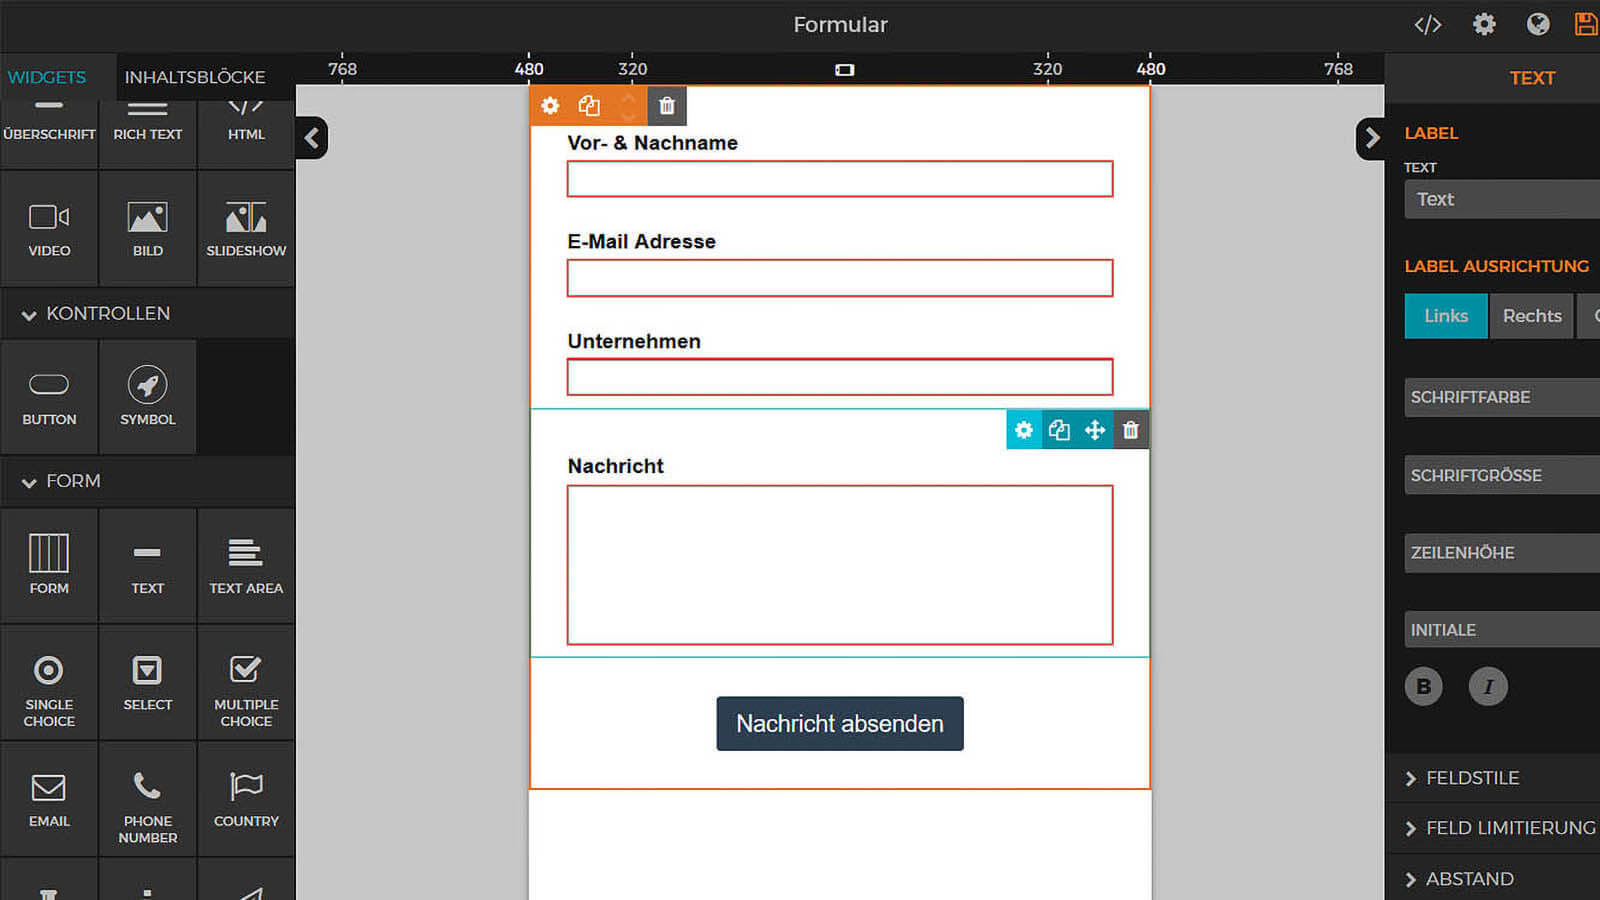 build create edit design forms questioners submit data